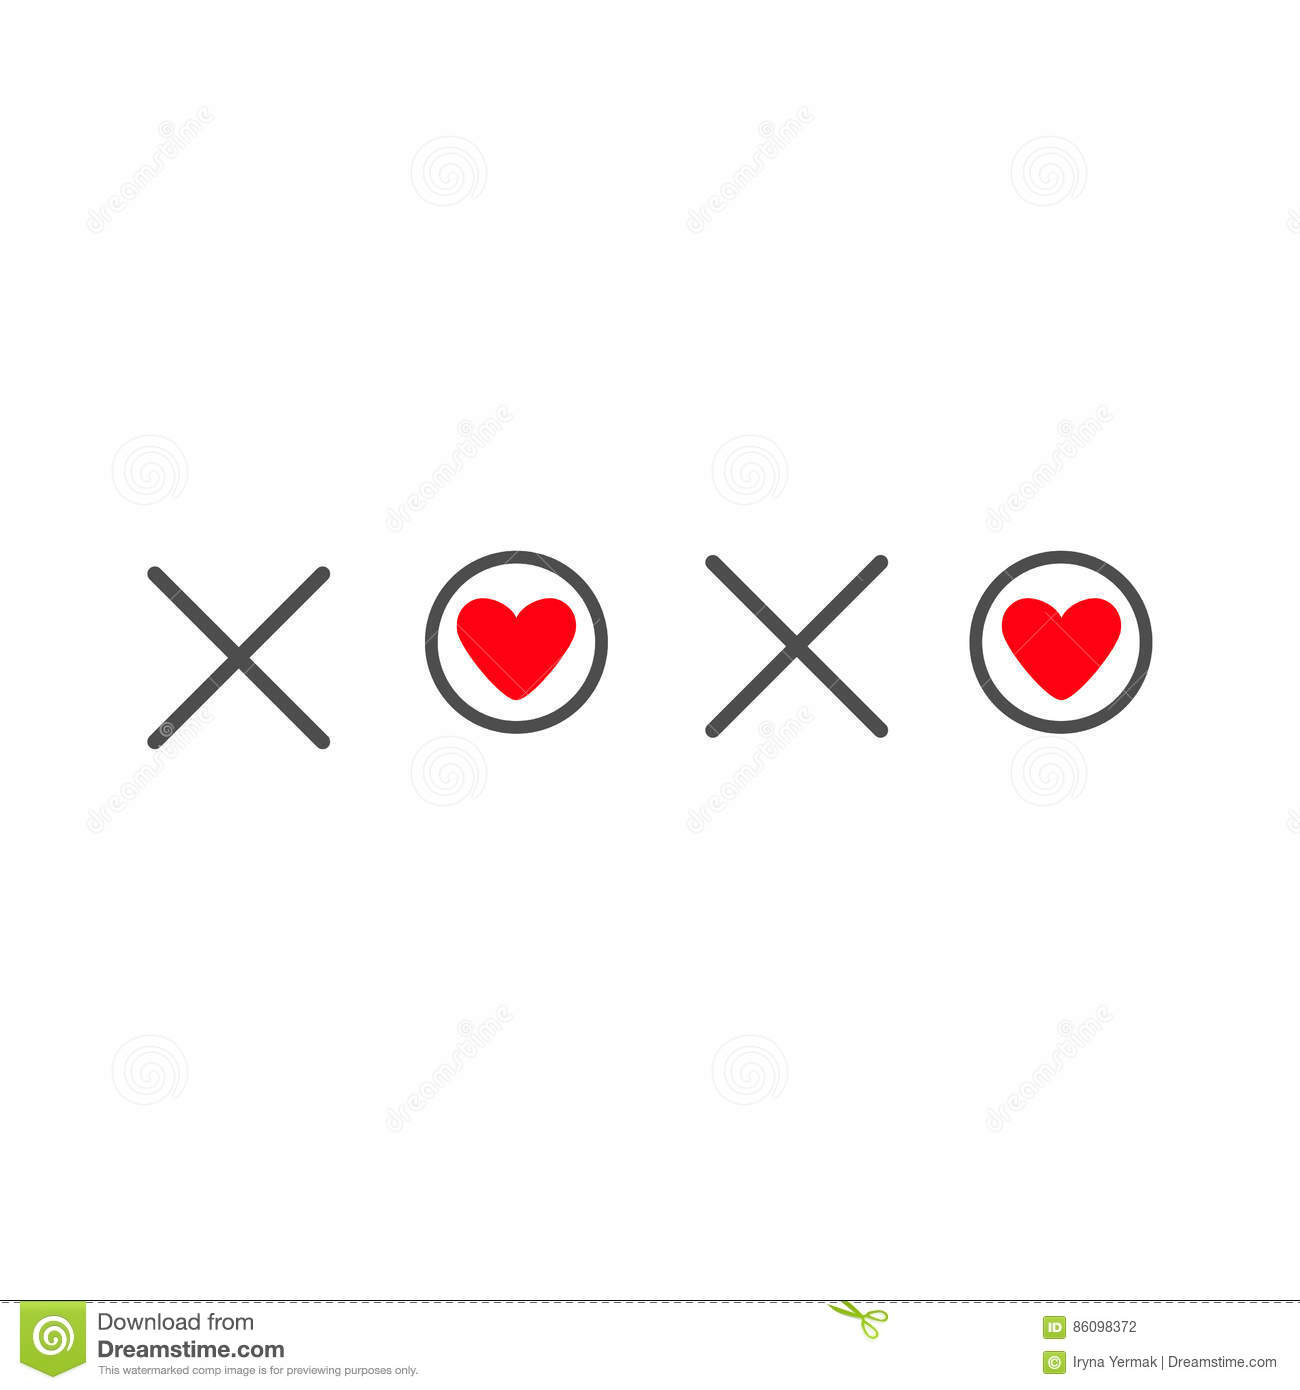 Xoxo Hugs And Kisses Sign Symbol Mark Love Card Red Heart Word Text